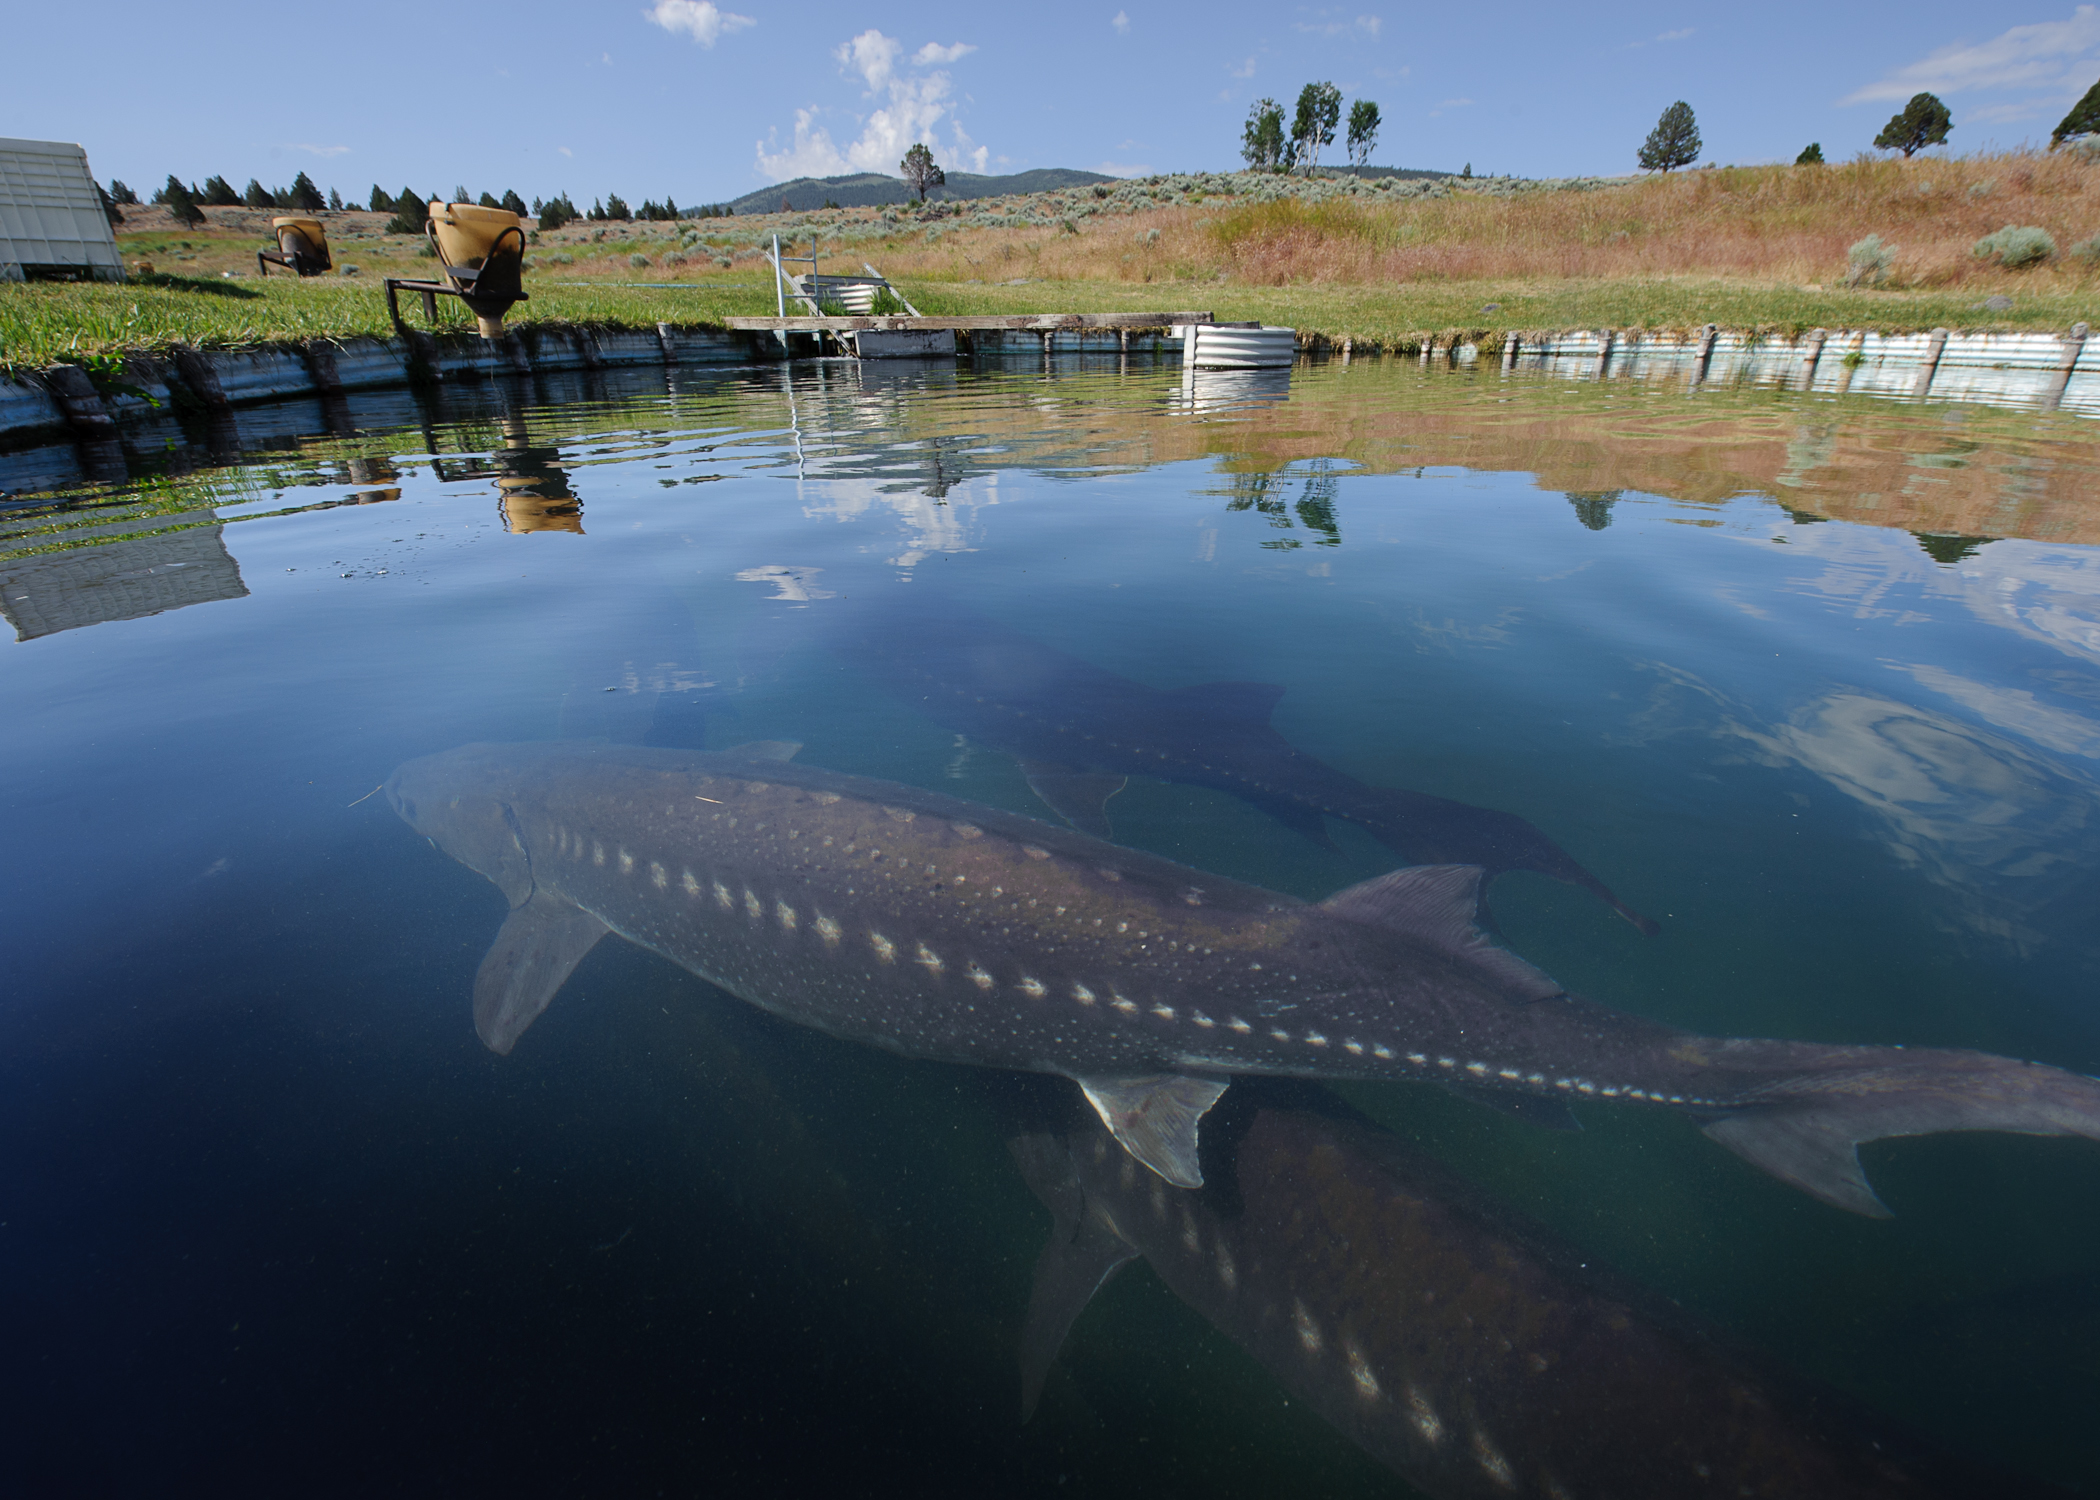 white sturgeon farming in california thalassophobia